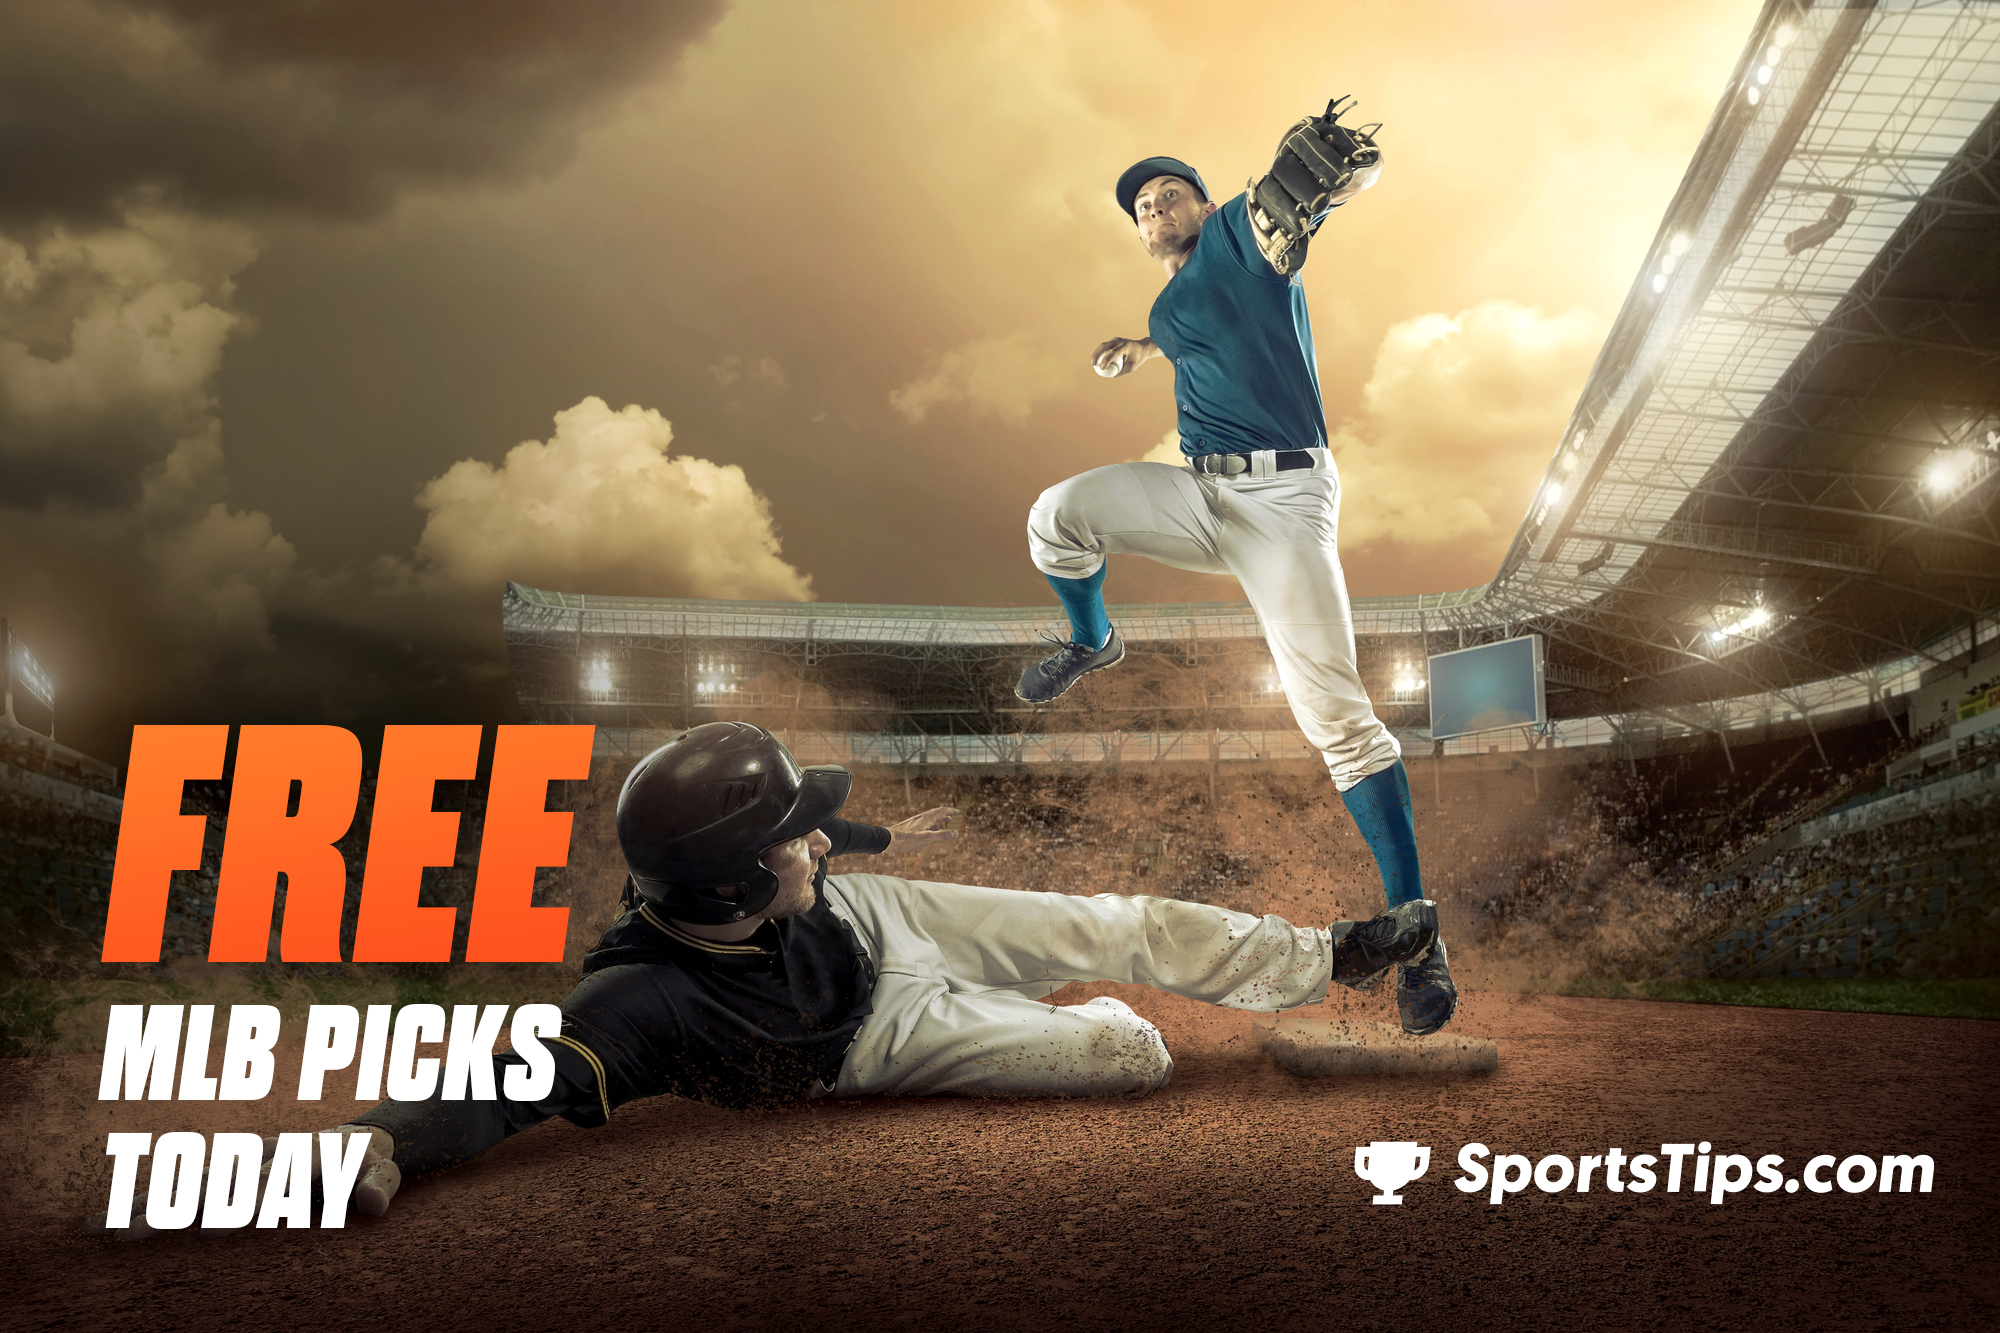 Free MLB Picks Today for Monday, May 3rd, 2021